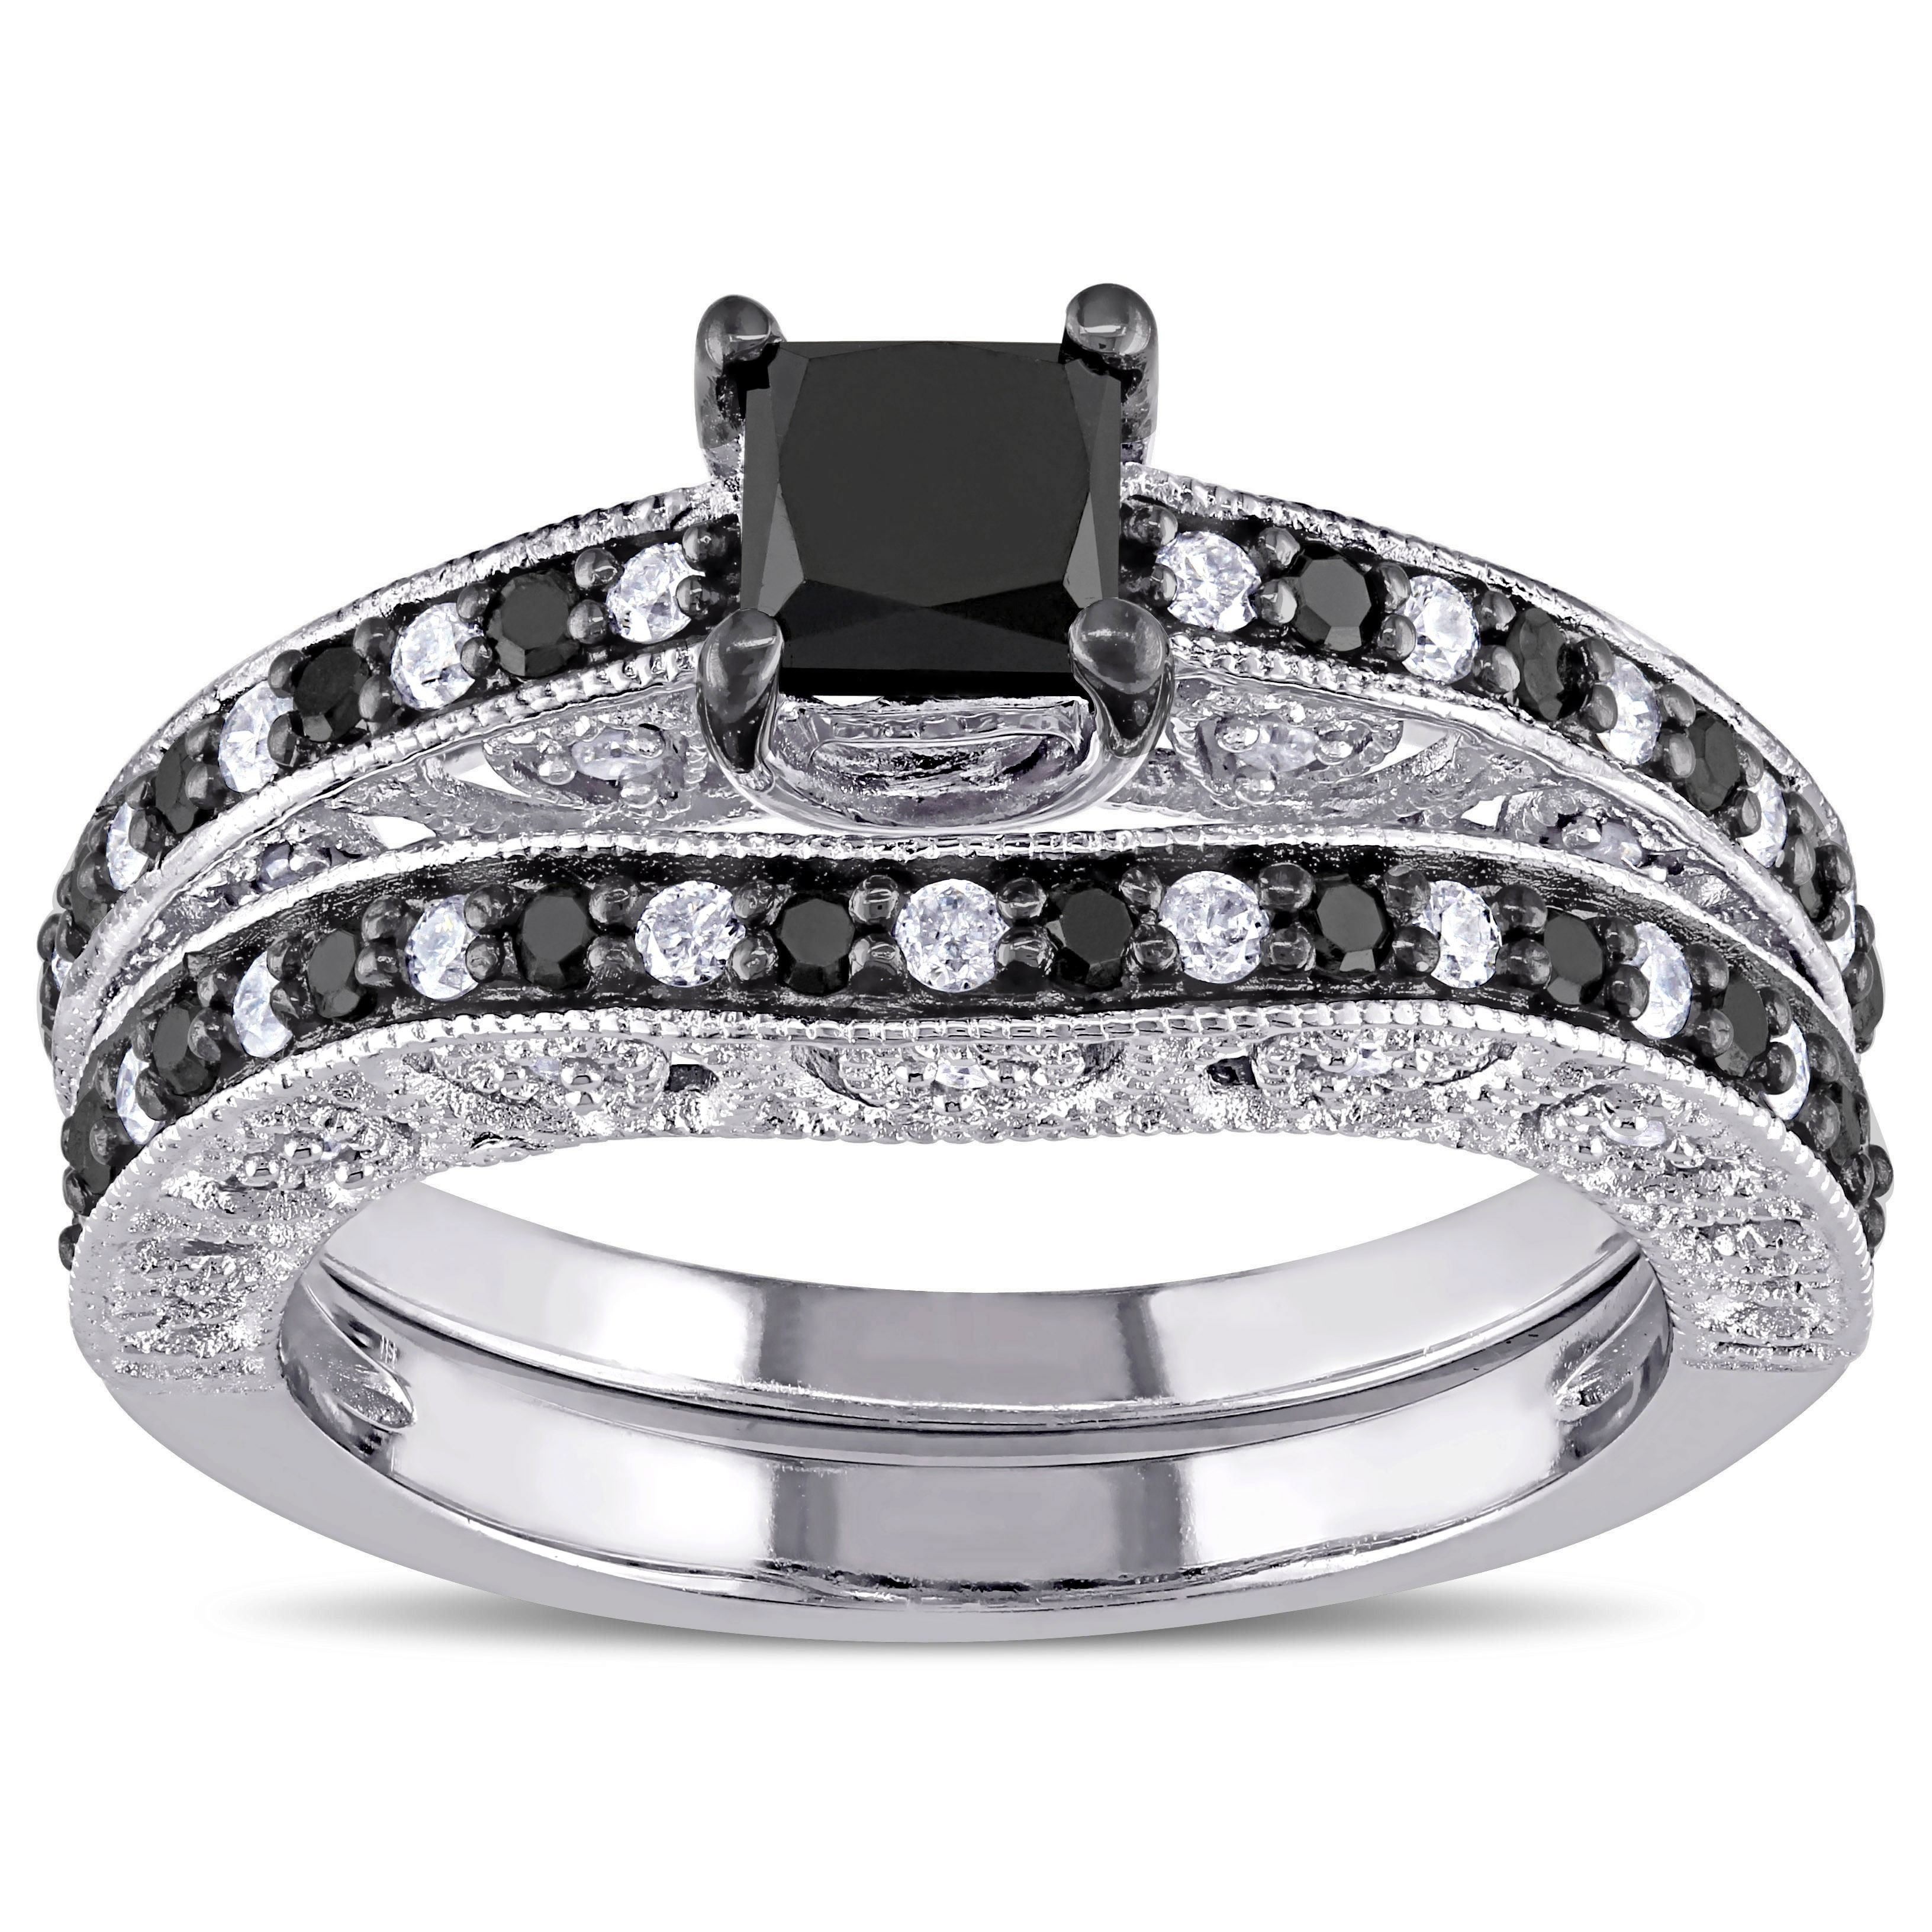 We advise removing this ring when being exposed to any